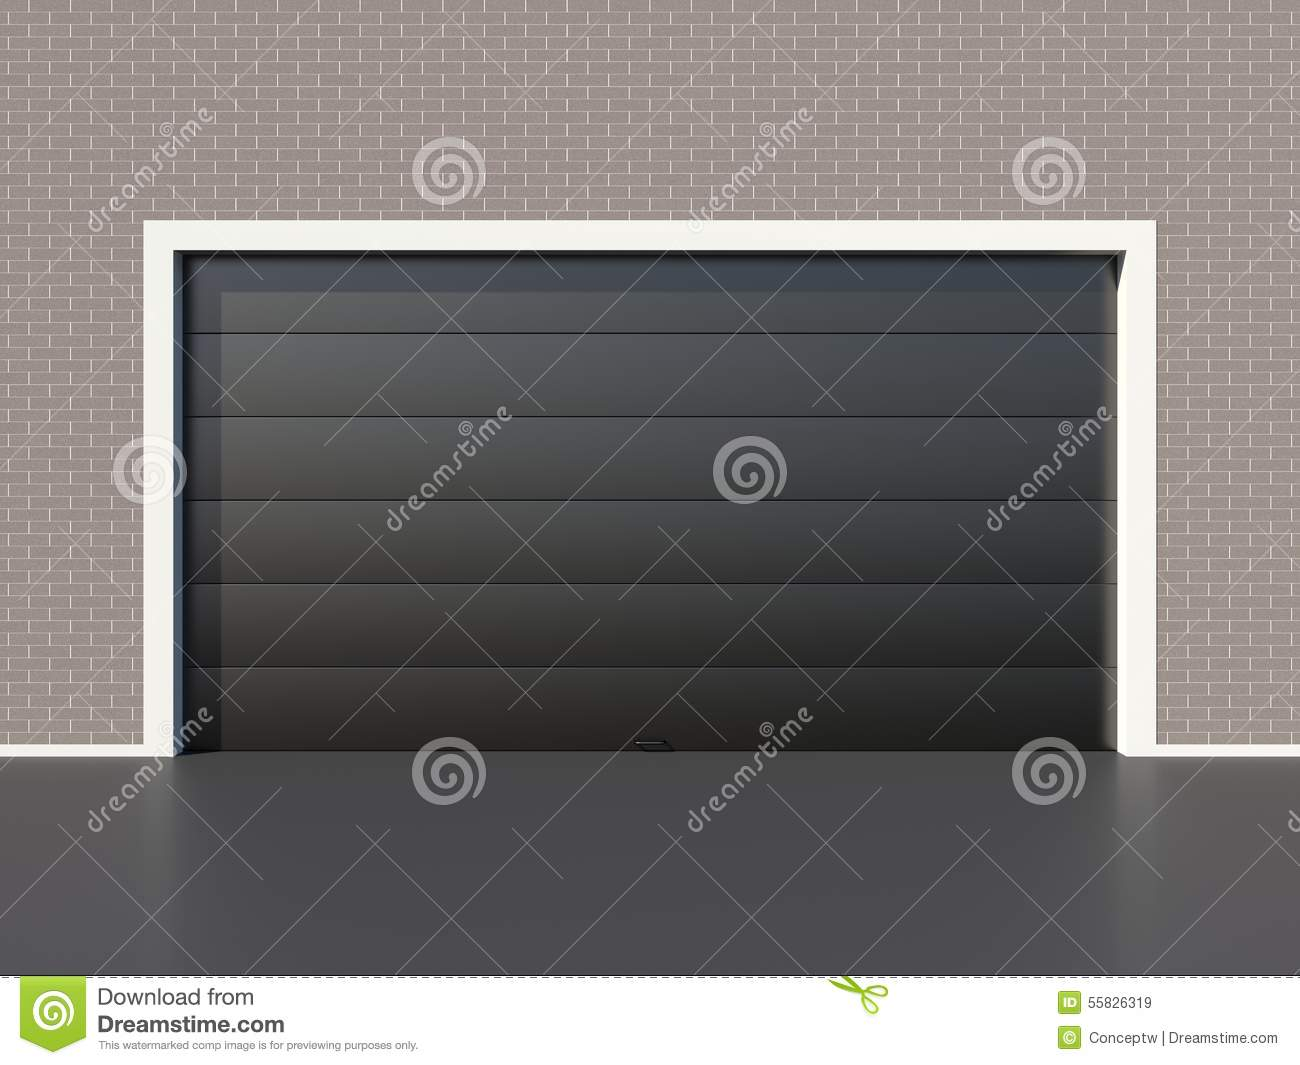 1065 #81A229 Black Garage Door Modern Metal Garage Door pic Black Steel Garage Doors 36511300